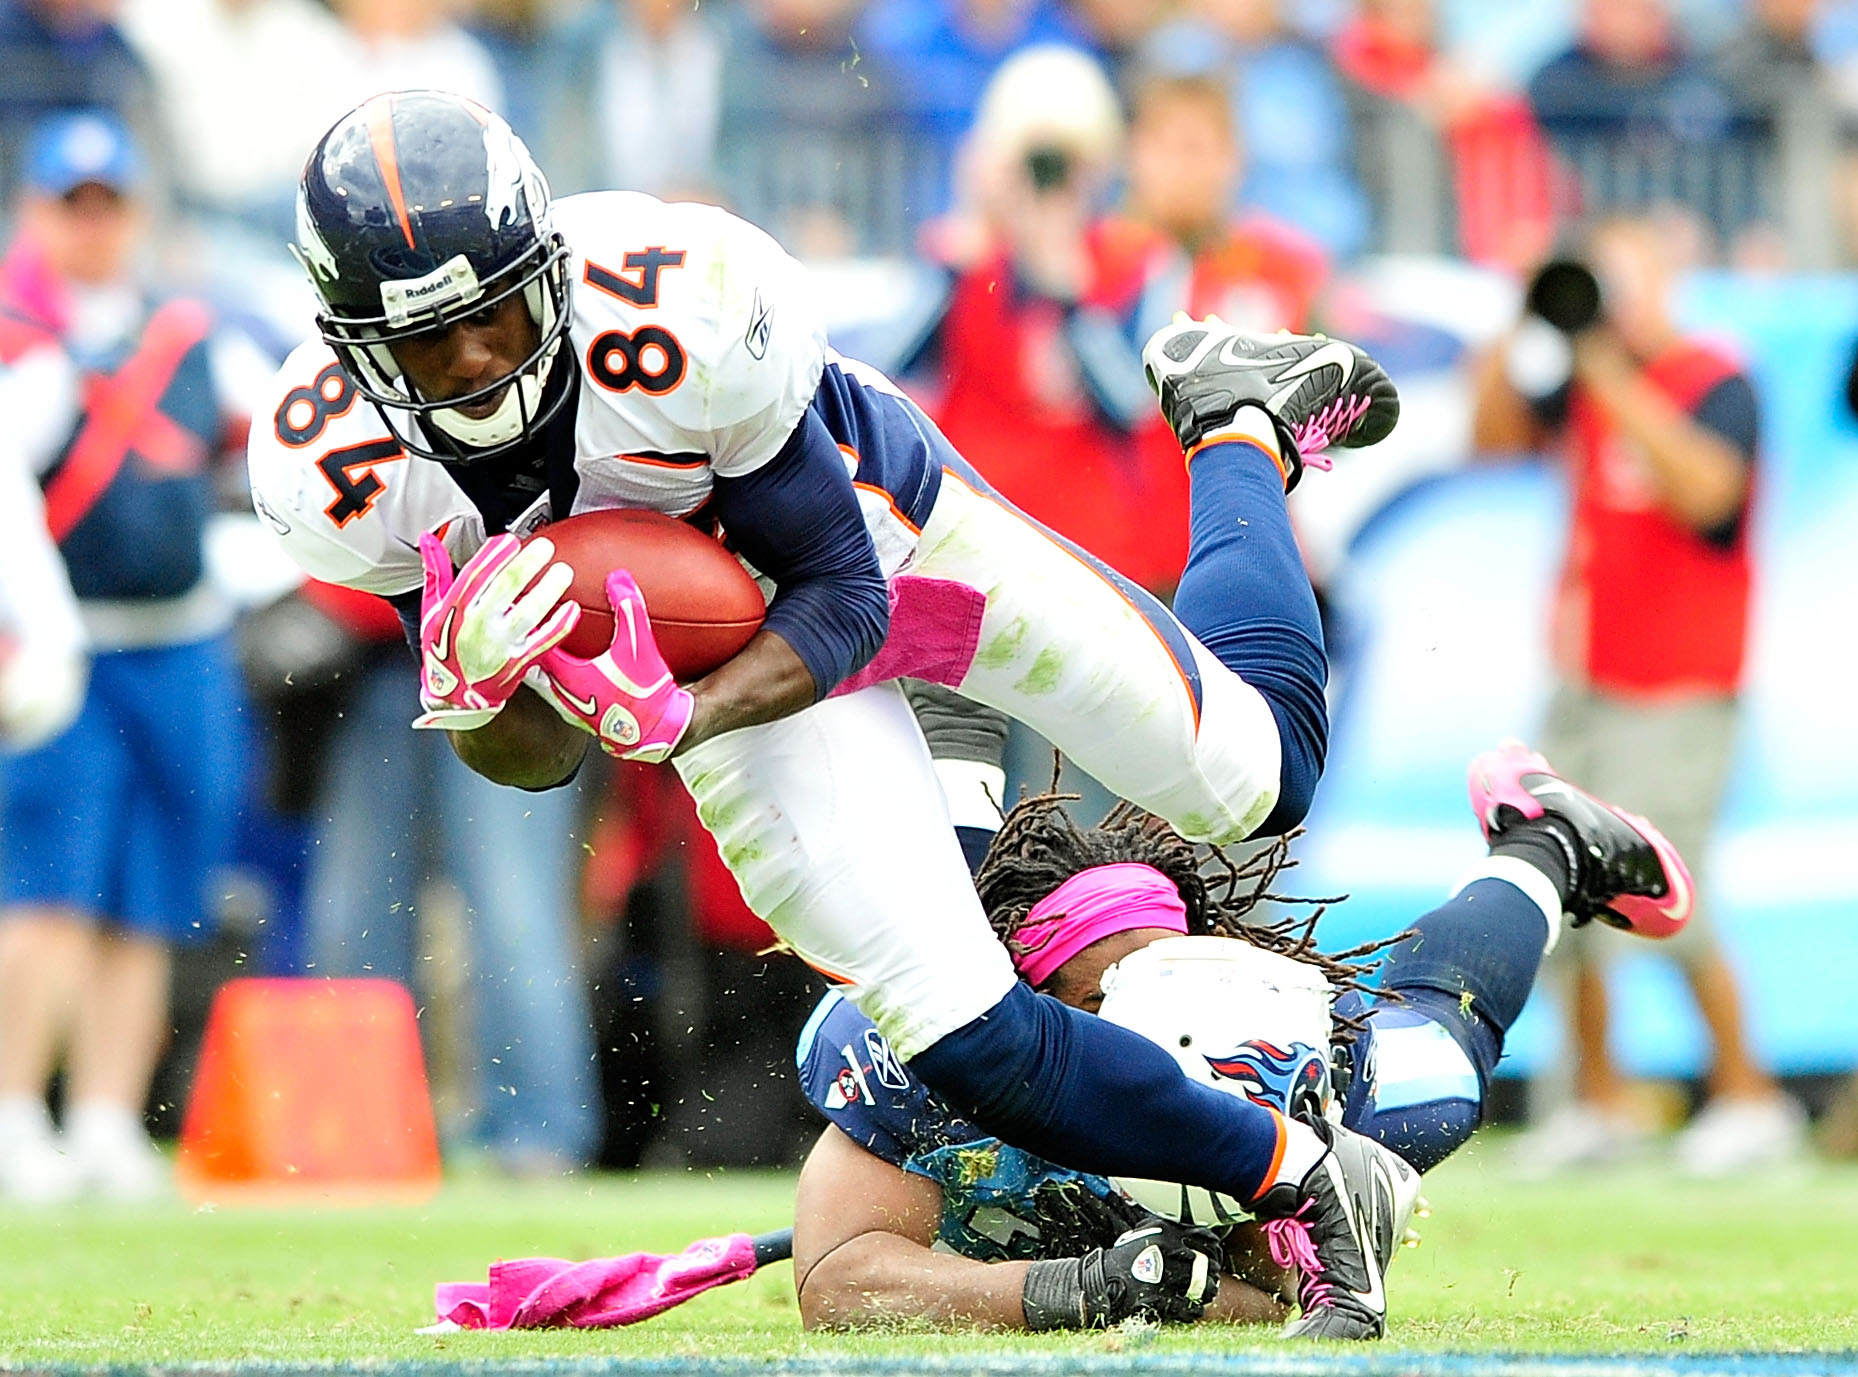 NASHVILLE, TN - OCTOBER 03:  Michael Griffin #33 of the Tennessee Titans loses his helmet as he tackles Brandon Lloyd #84 of the Denver Broncos at LP Field on October 3, 2010 in Nashville, Tennessee. Denver won 26-20.  (Photo by Grant Halverson/Getty Imag